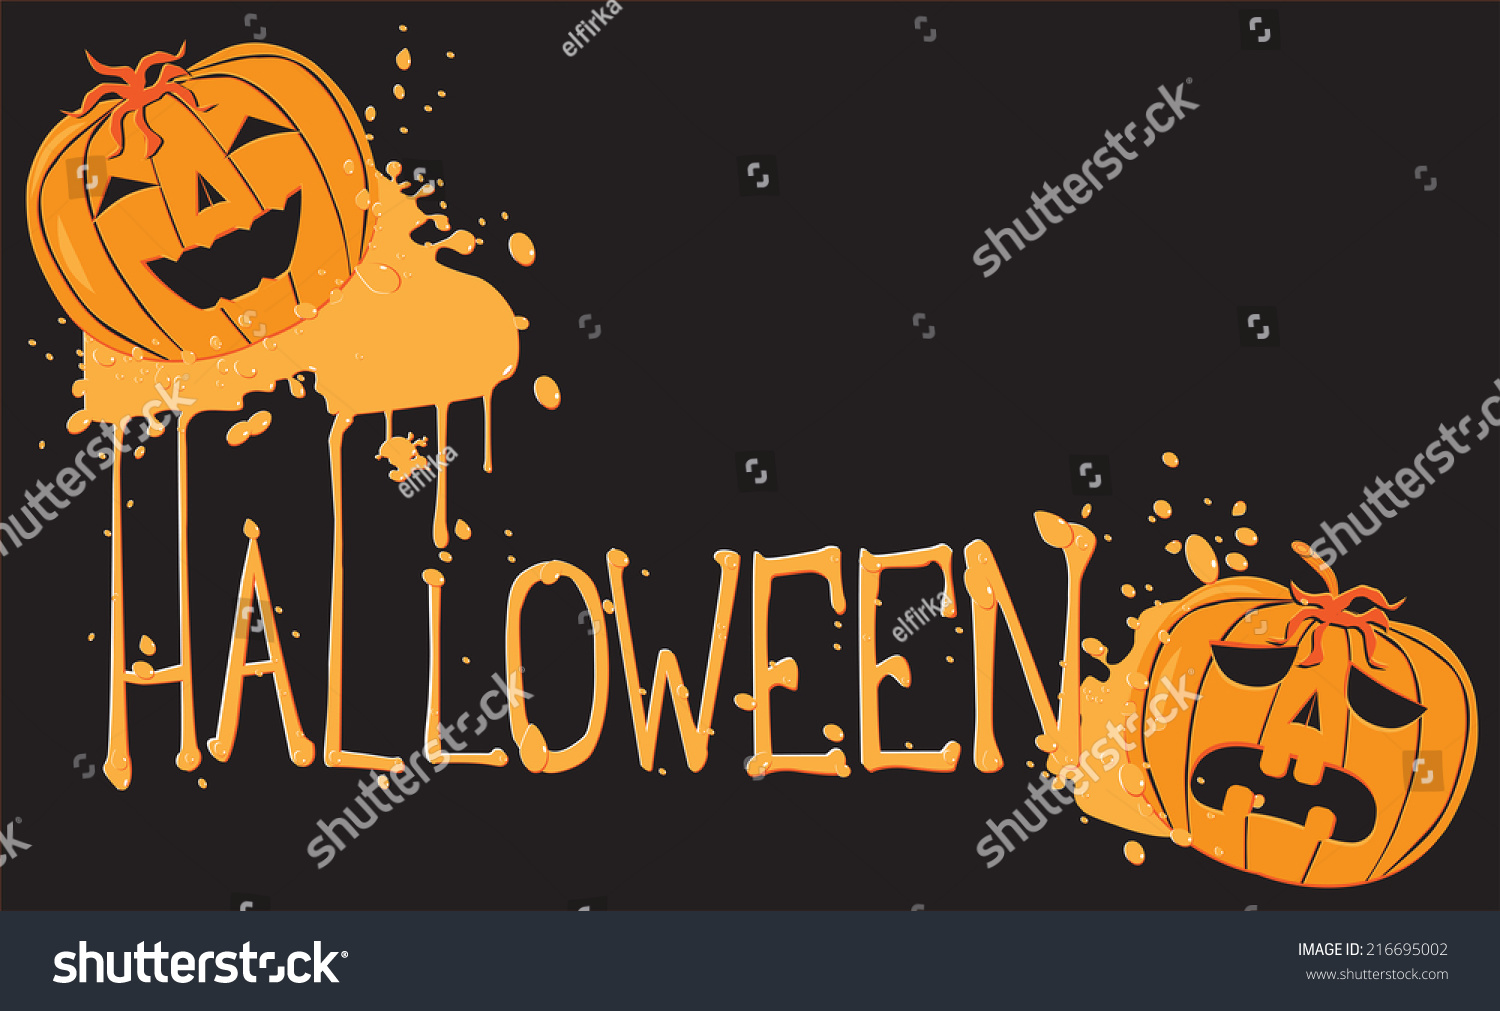 Funny Halloween Text Pumpkins Stock Vector 216695002 - Shutterstock